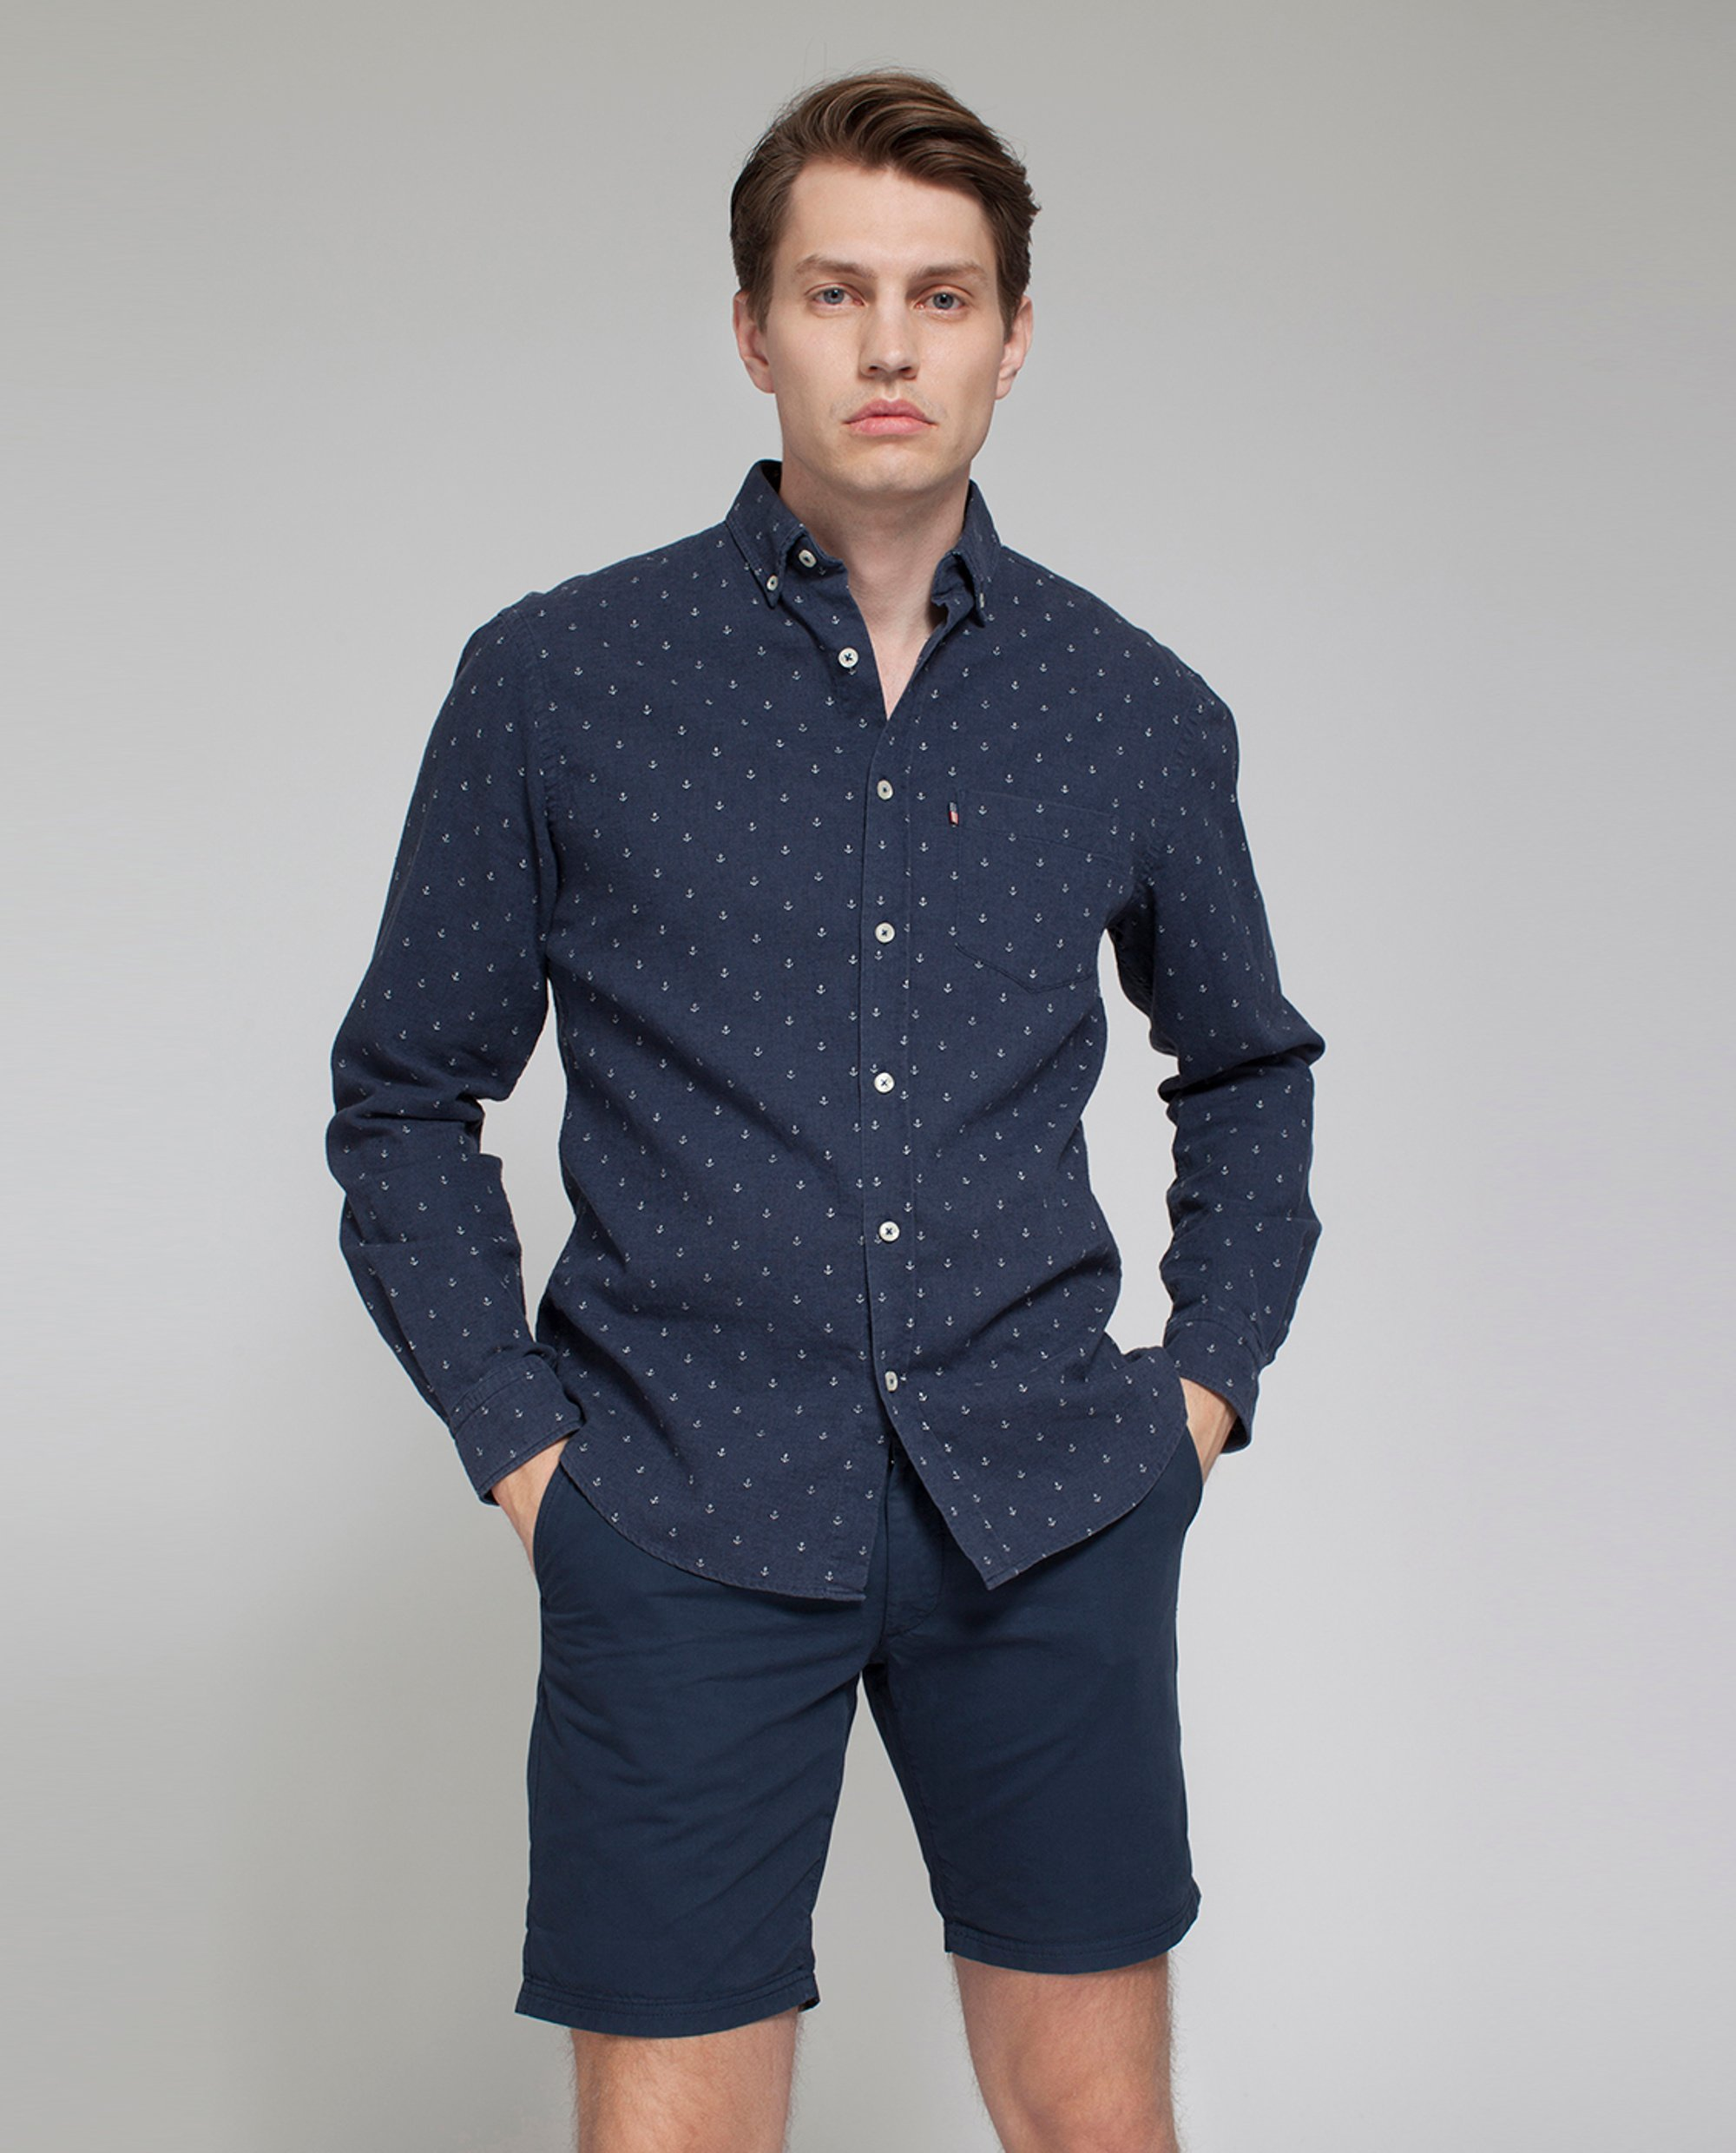 Taylor Anchor Shirt, Anchor Print